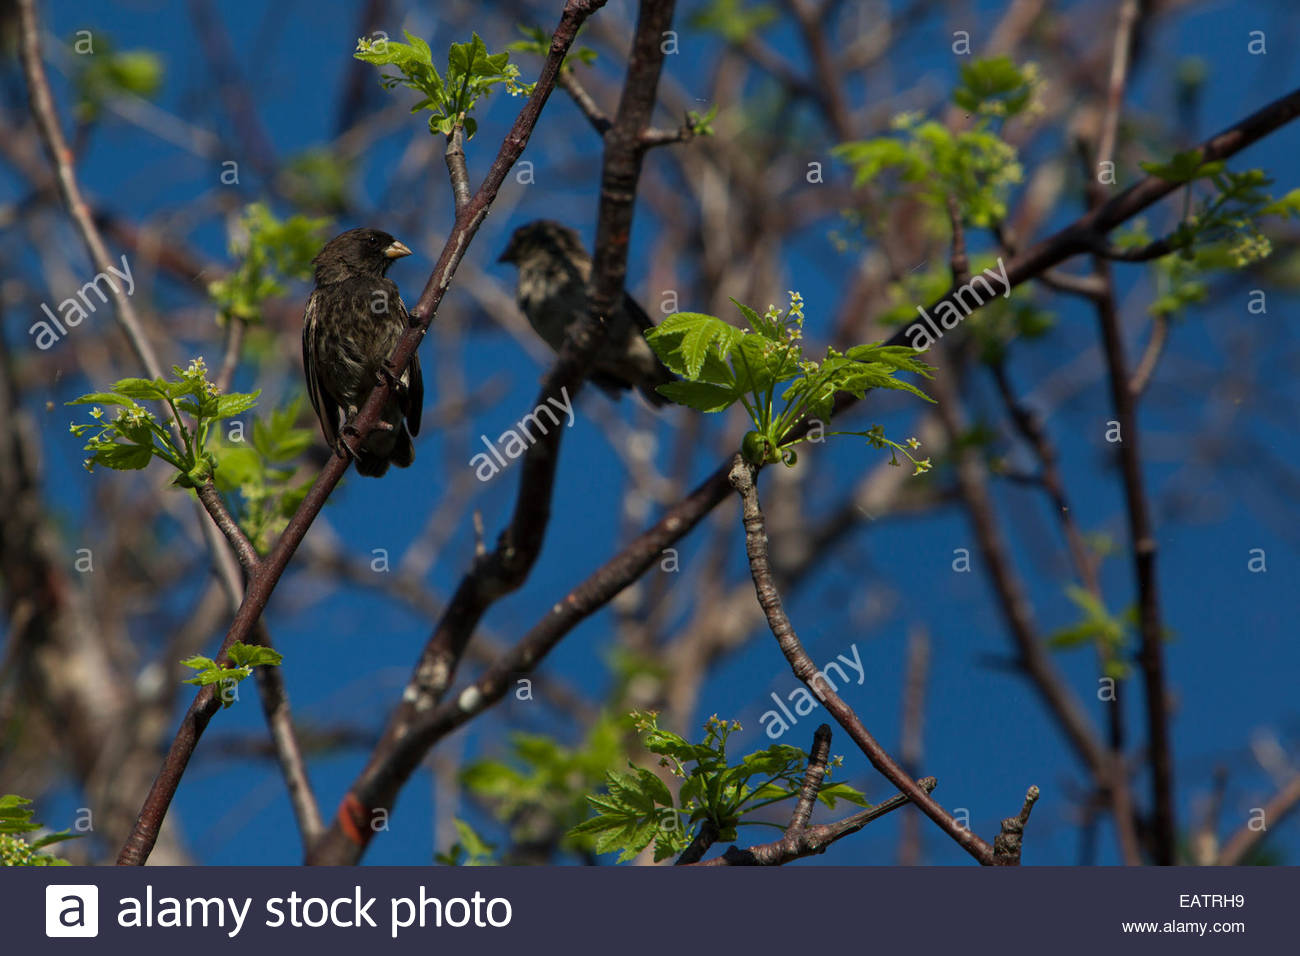 Two Galapagos finches rest on a branch in Galapagos National Park. - Stock Image